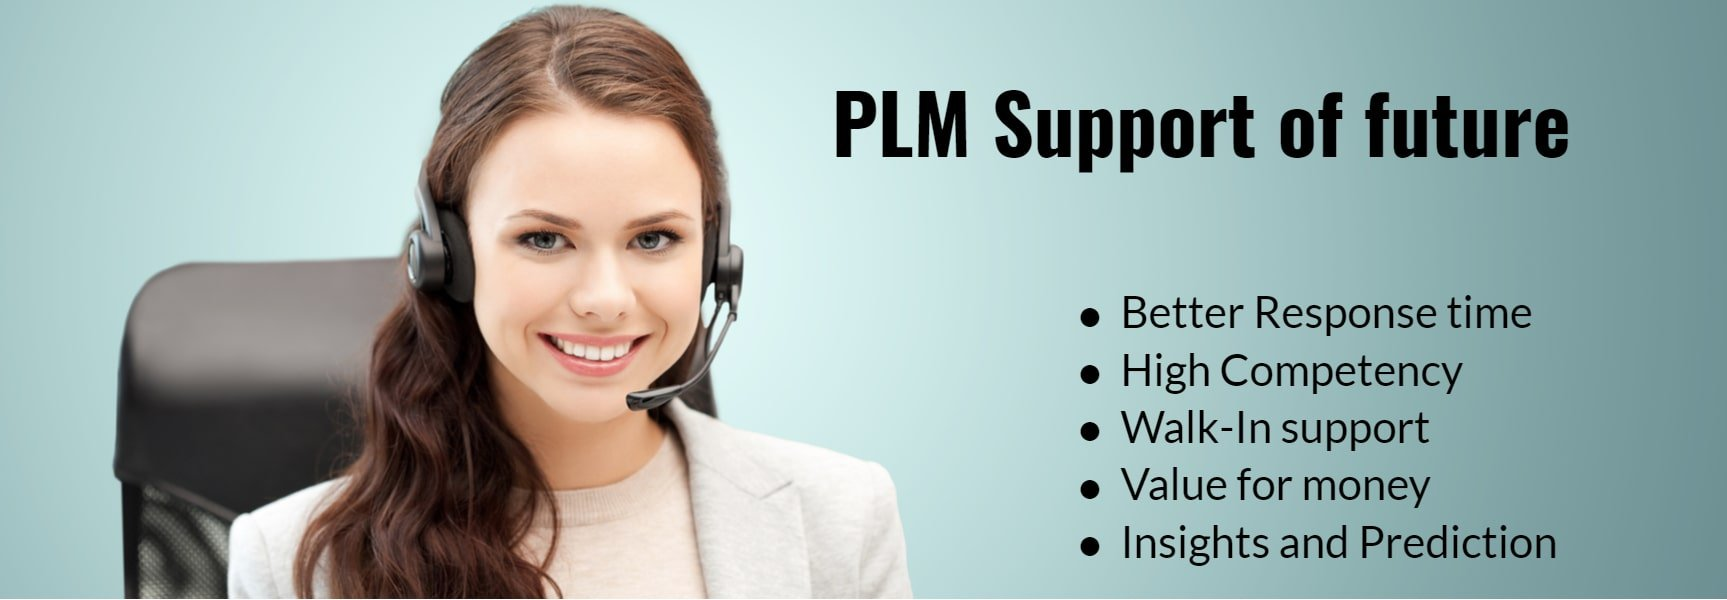 plm-support